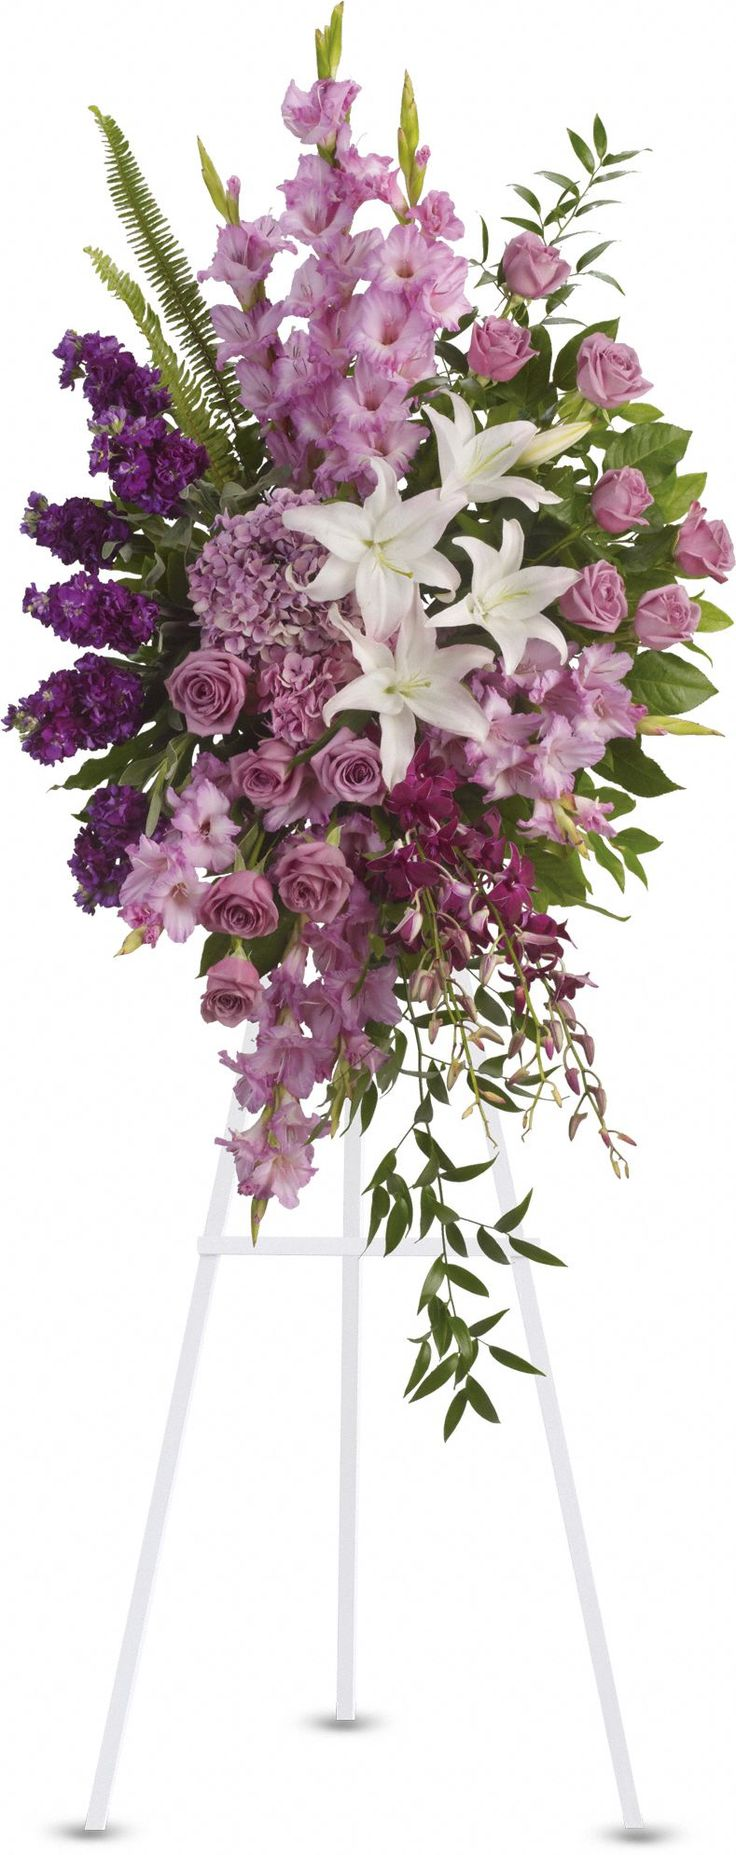 1000 ideas about funeral arrangements on pinterest for A arrangement florist flowers